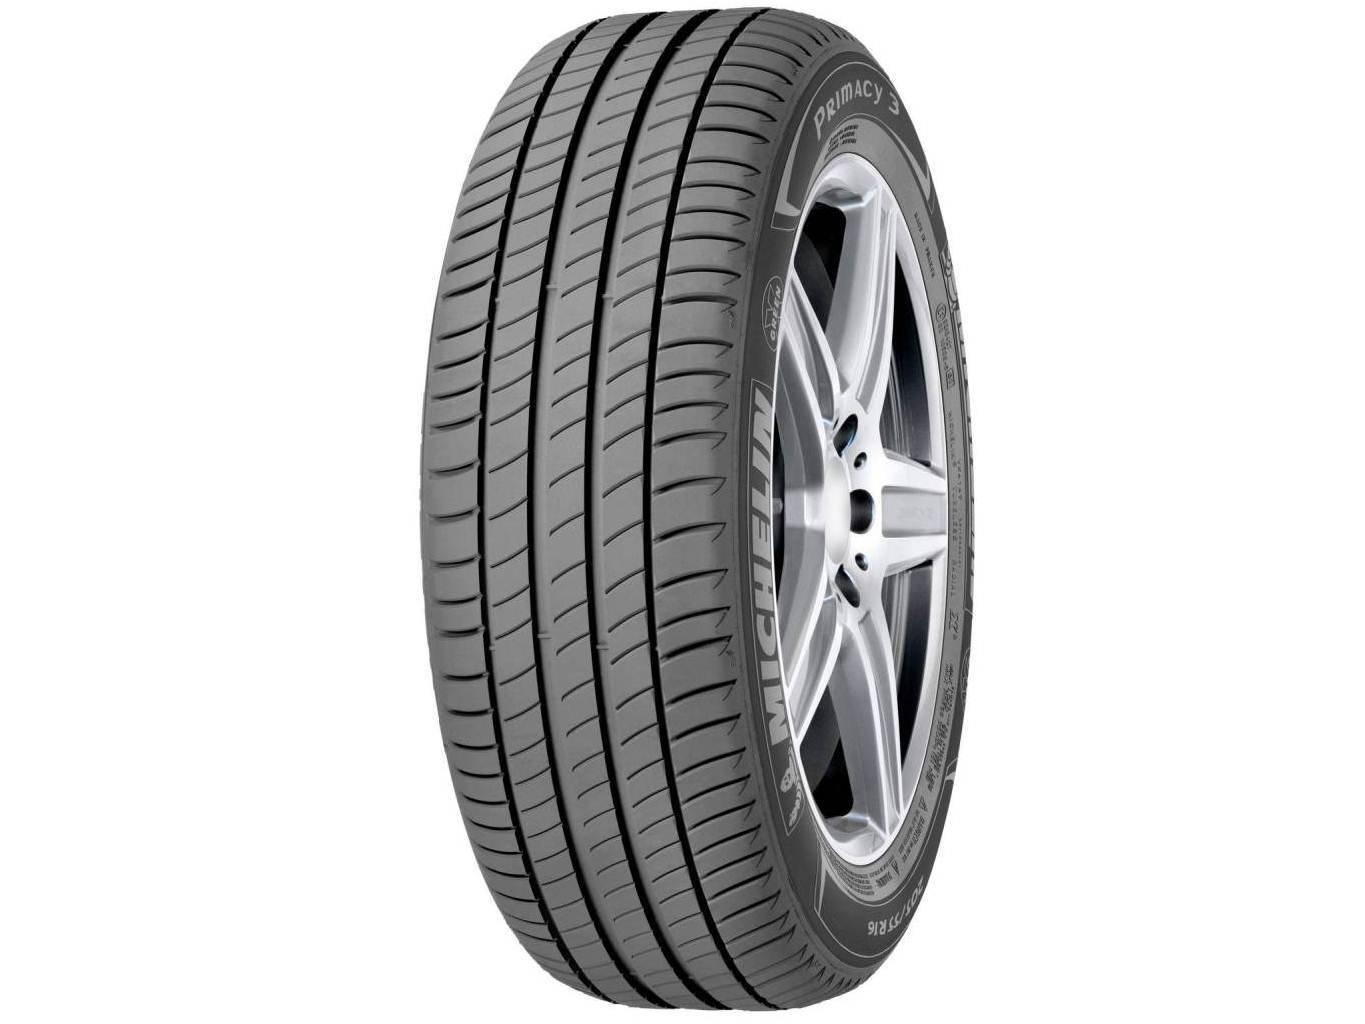 205/45 R17 Michelin Primacy 3 88V XL